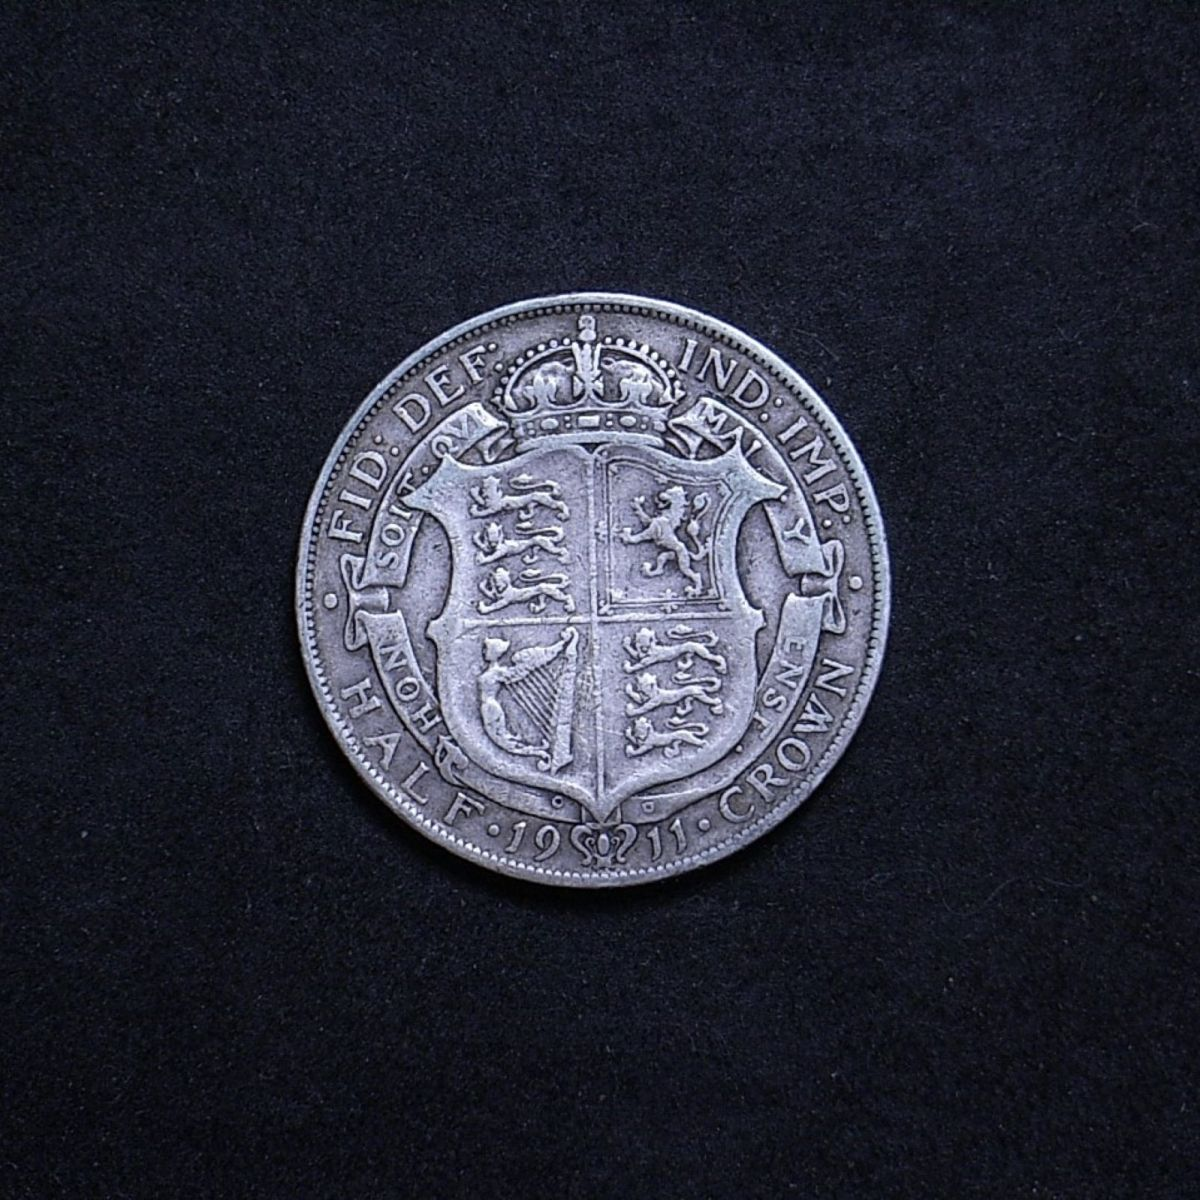 UK Half Crown 1911 reverse showing overall appearance